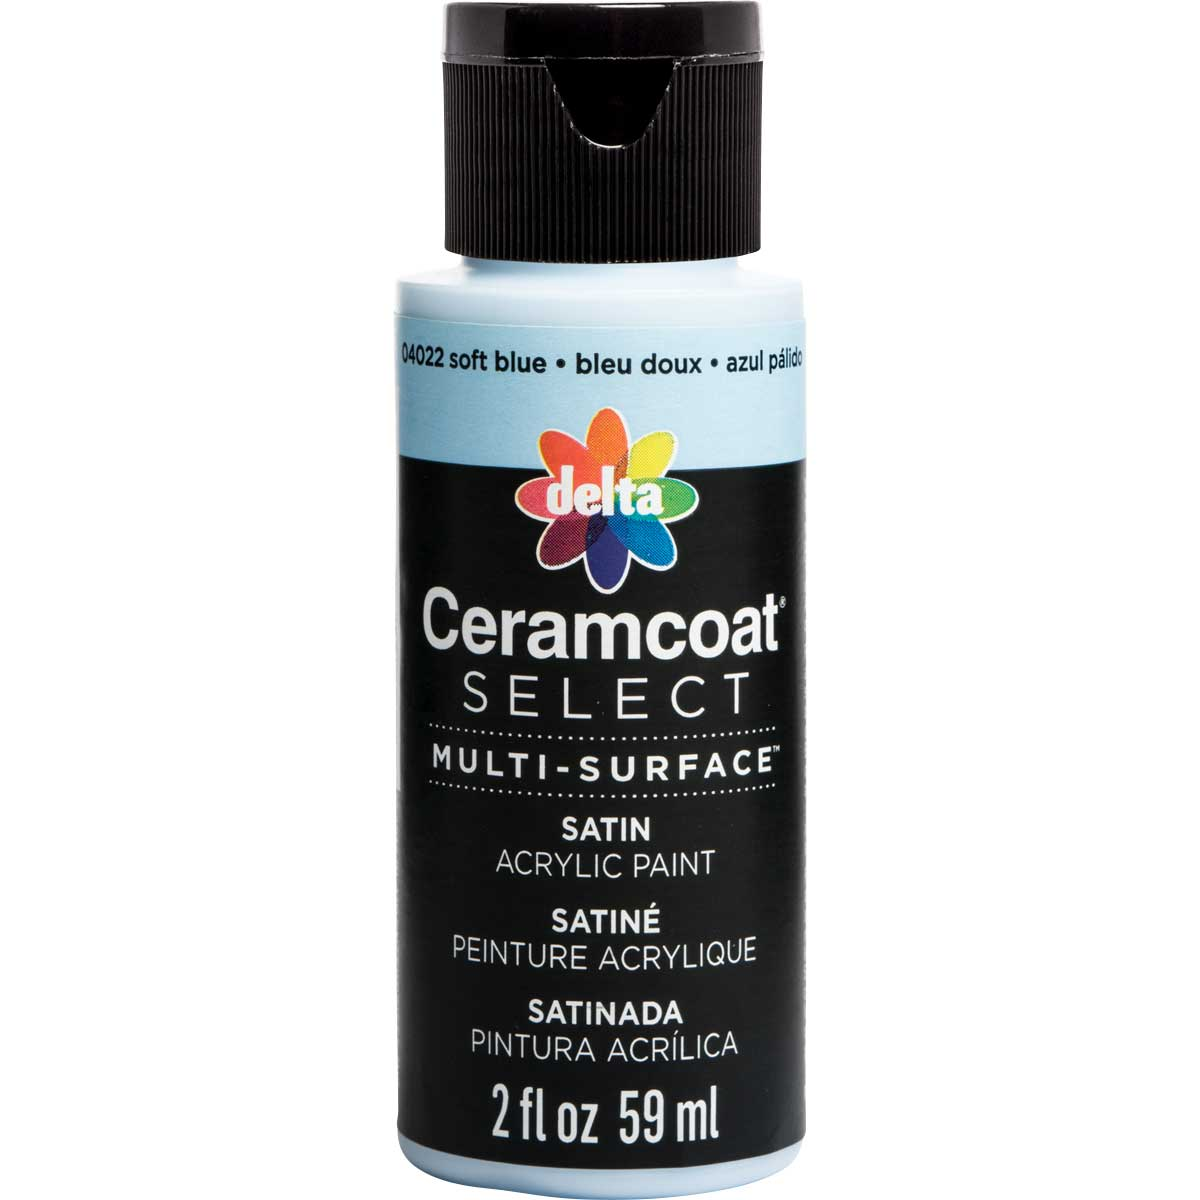 Delta Ceramcoat ® Select Multi-Surface Acrylic Paint - Satin - Soft Blue, 2 oz.